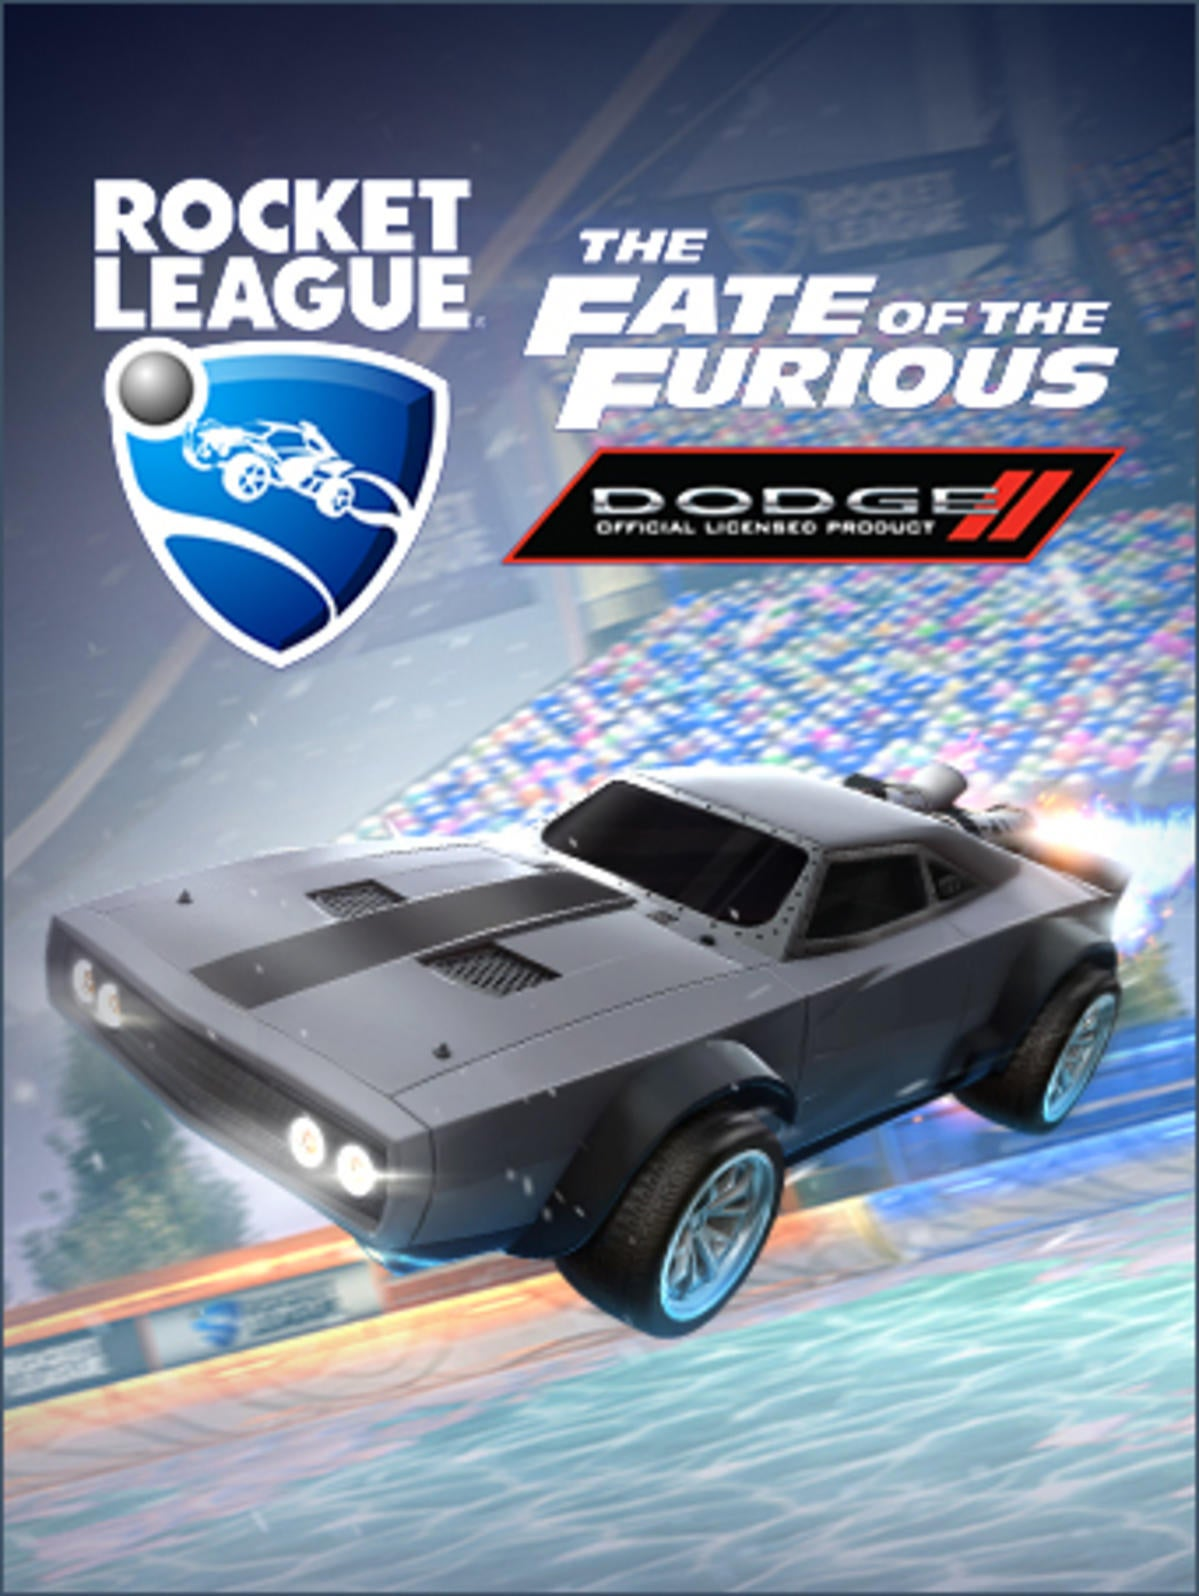 Dodge Ice Charger >> The Fate of the Furious™ Ice Charger | Rocket League® - Official Site